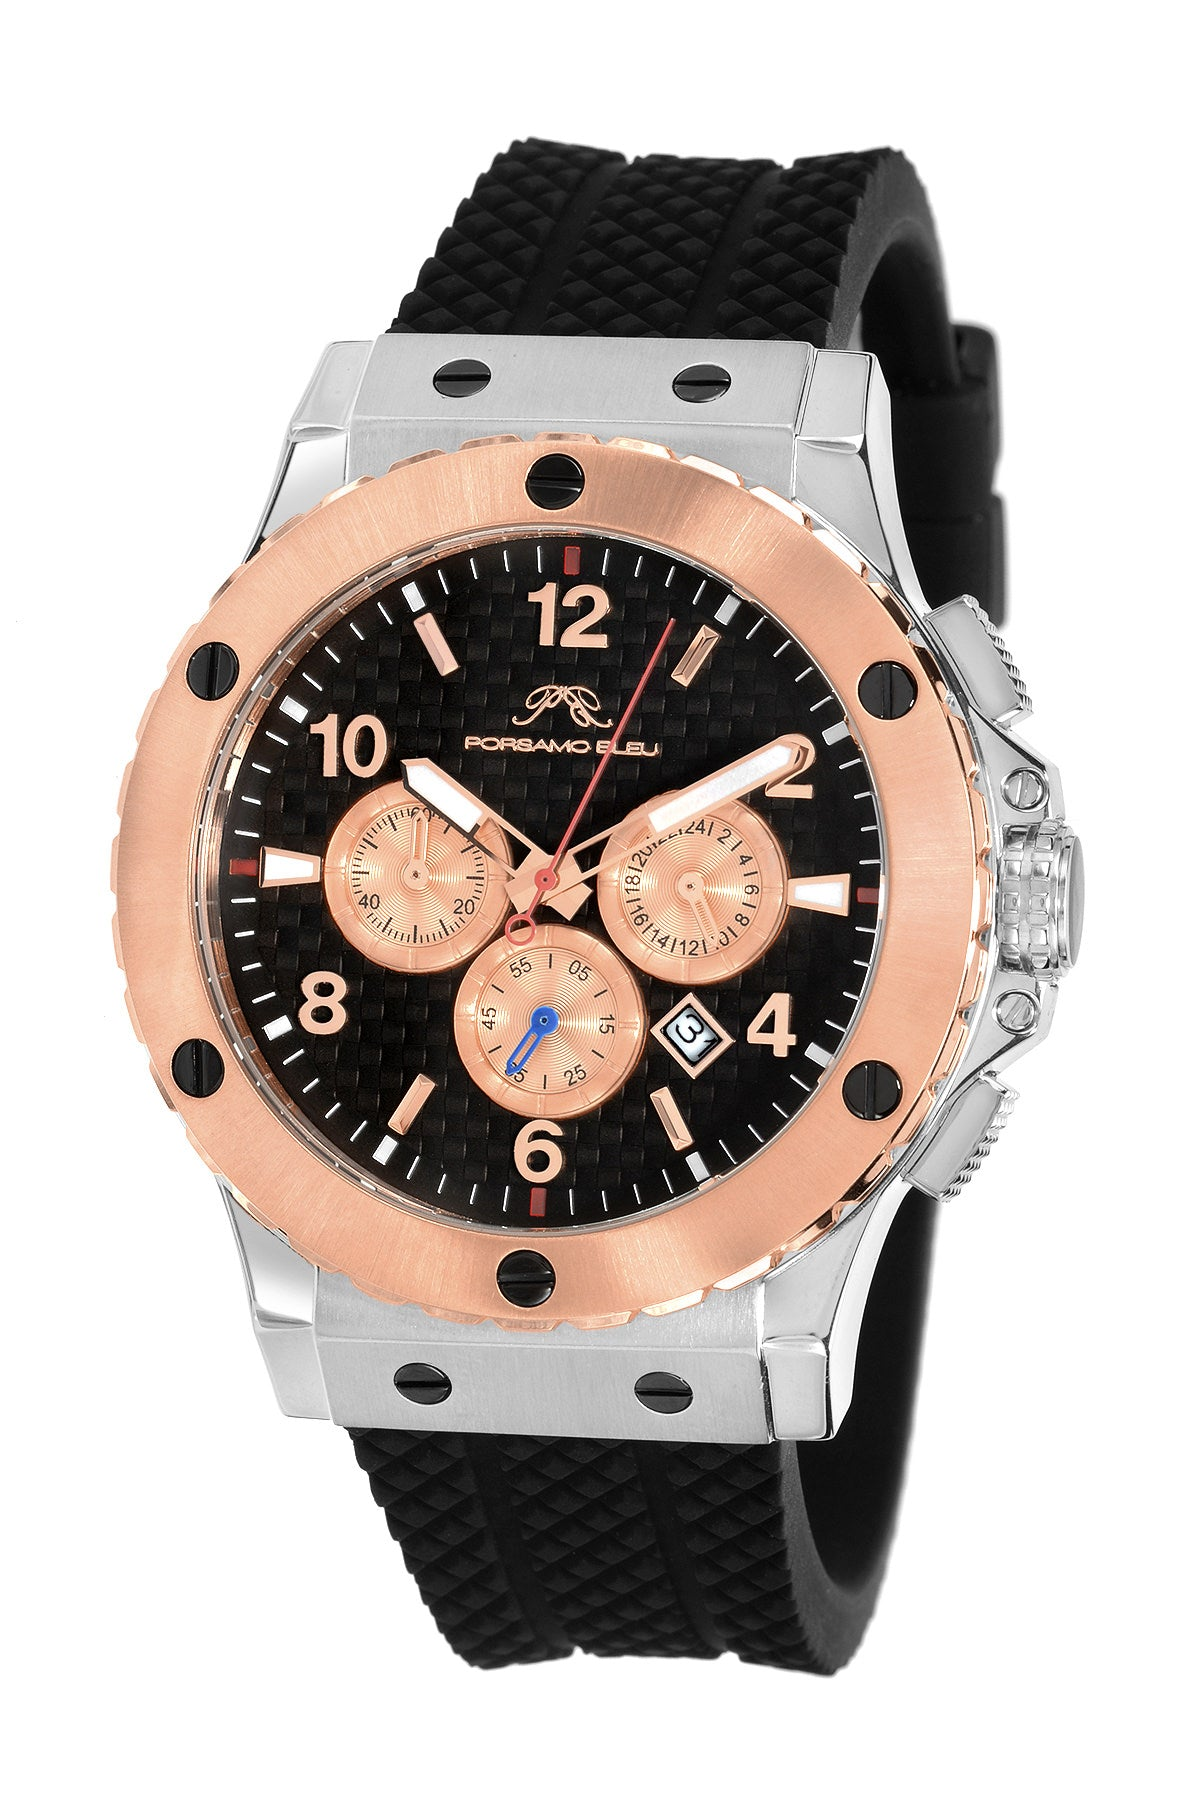 Porsamo Bleu Marcus luxury chronograph men's watch, silicone strap, rose, silver, black 651DMAR